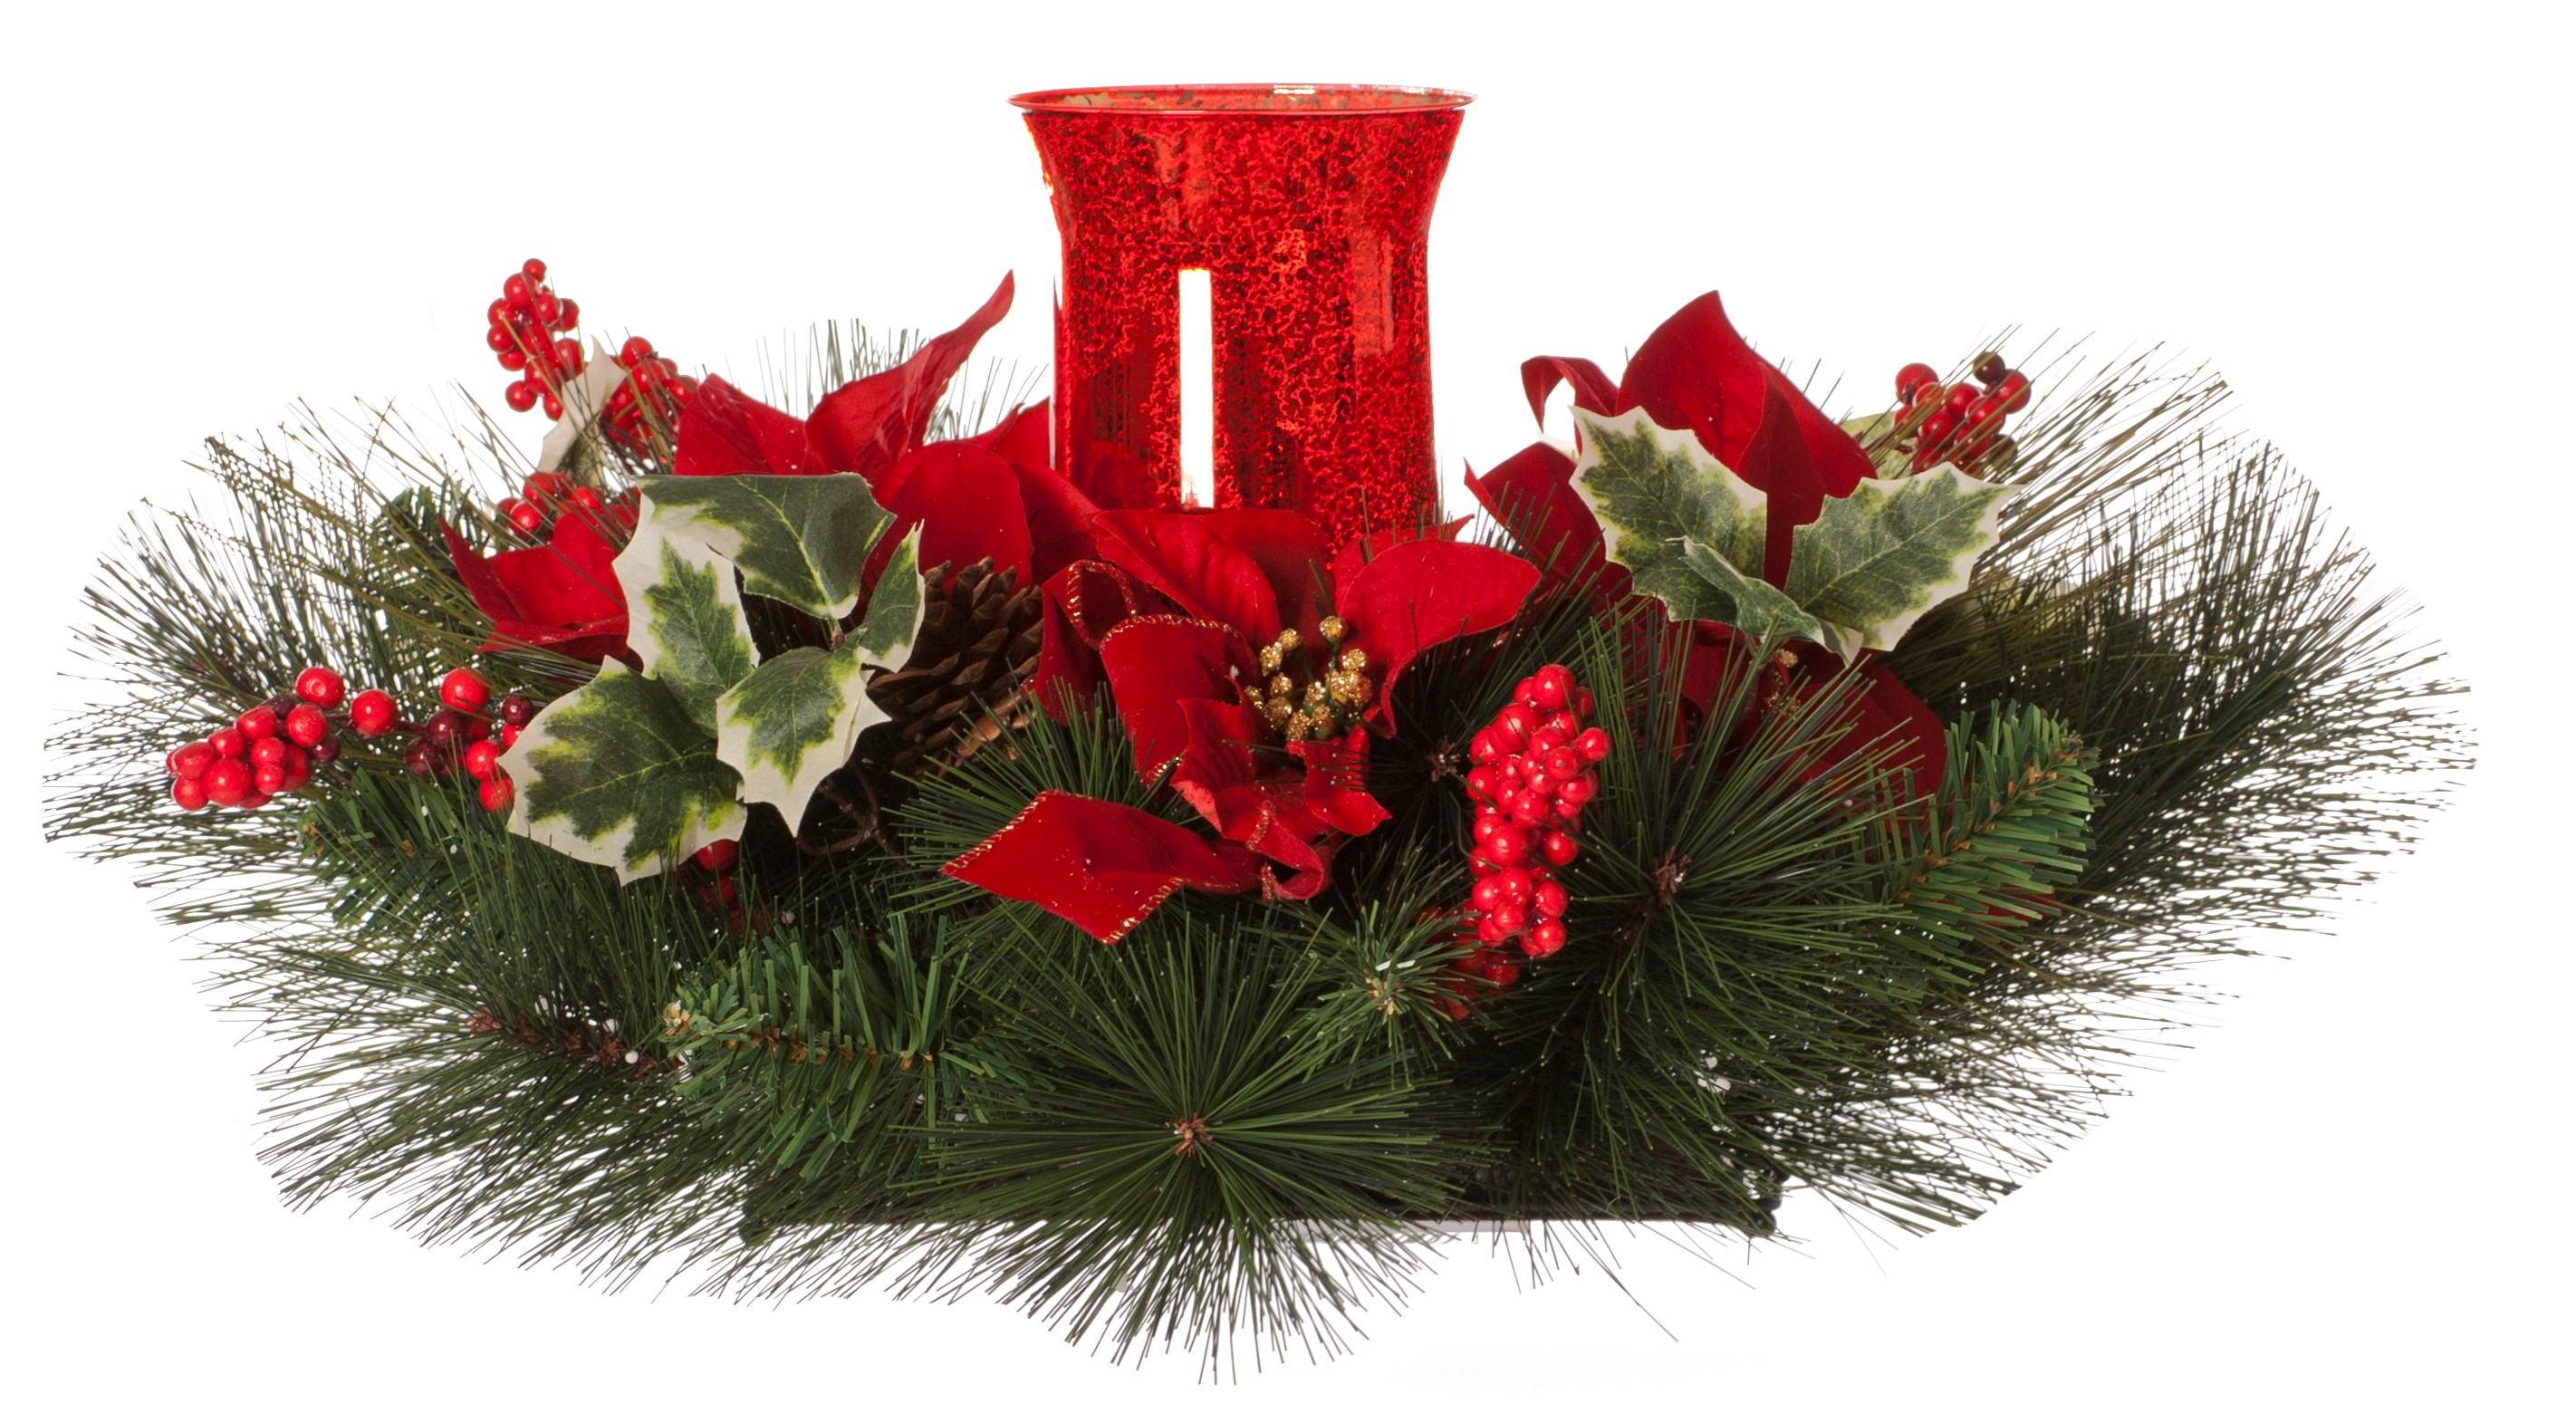 Festive Christmas Table Centrepiece Candle Holder Red Christmas